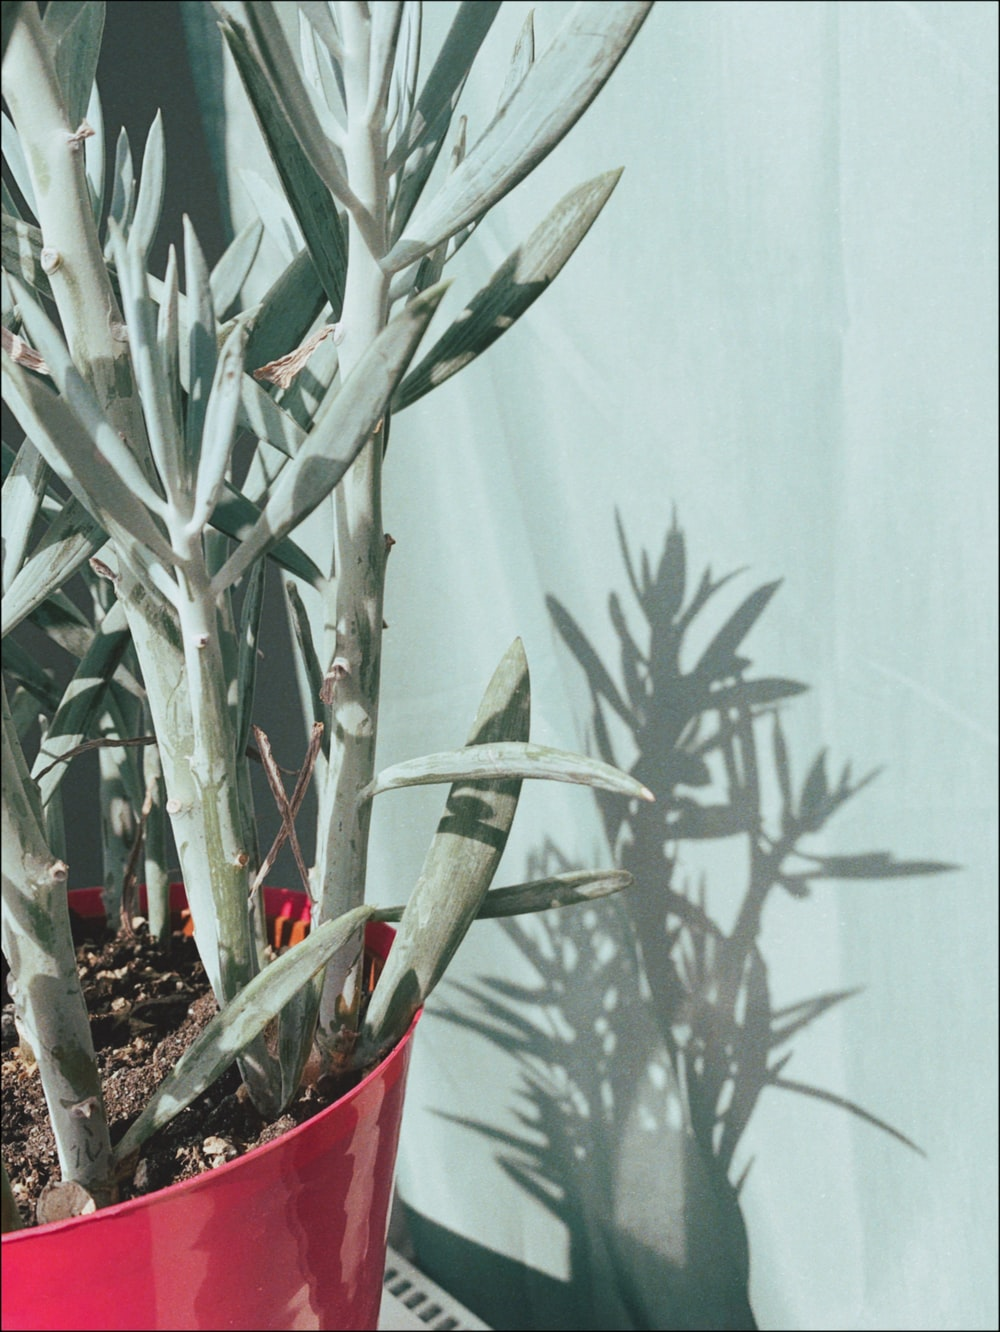 green succulent plant on red plastic pot